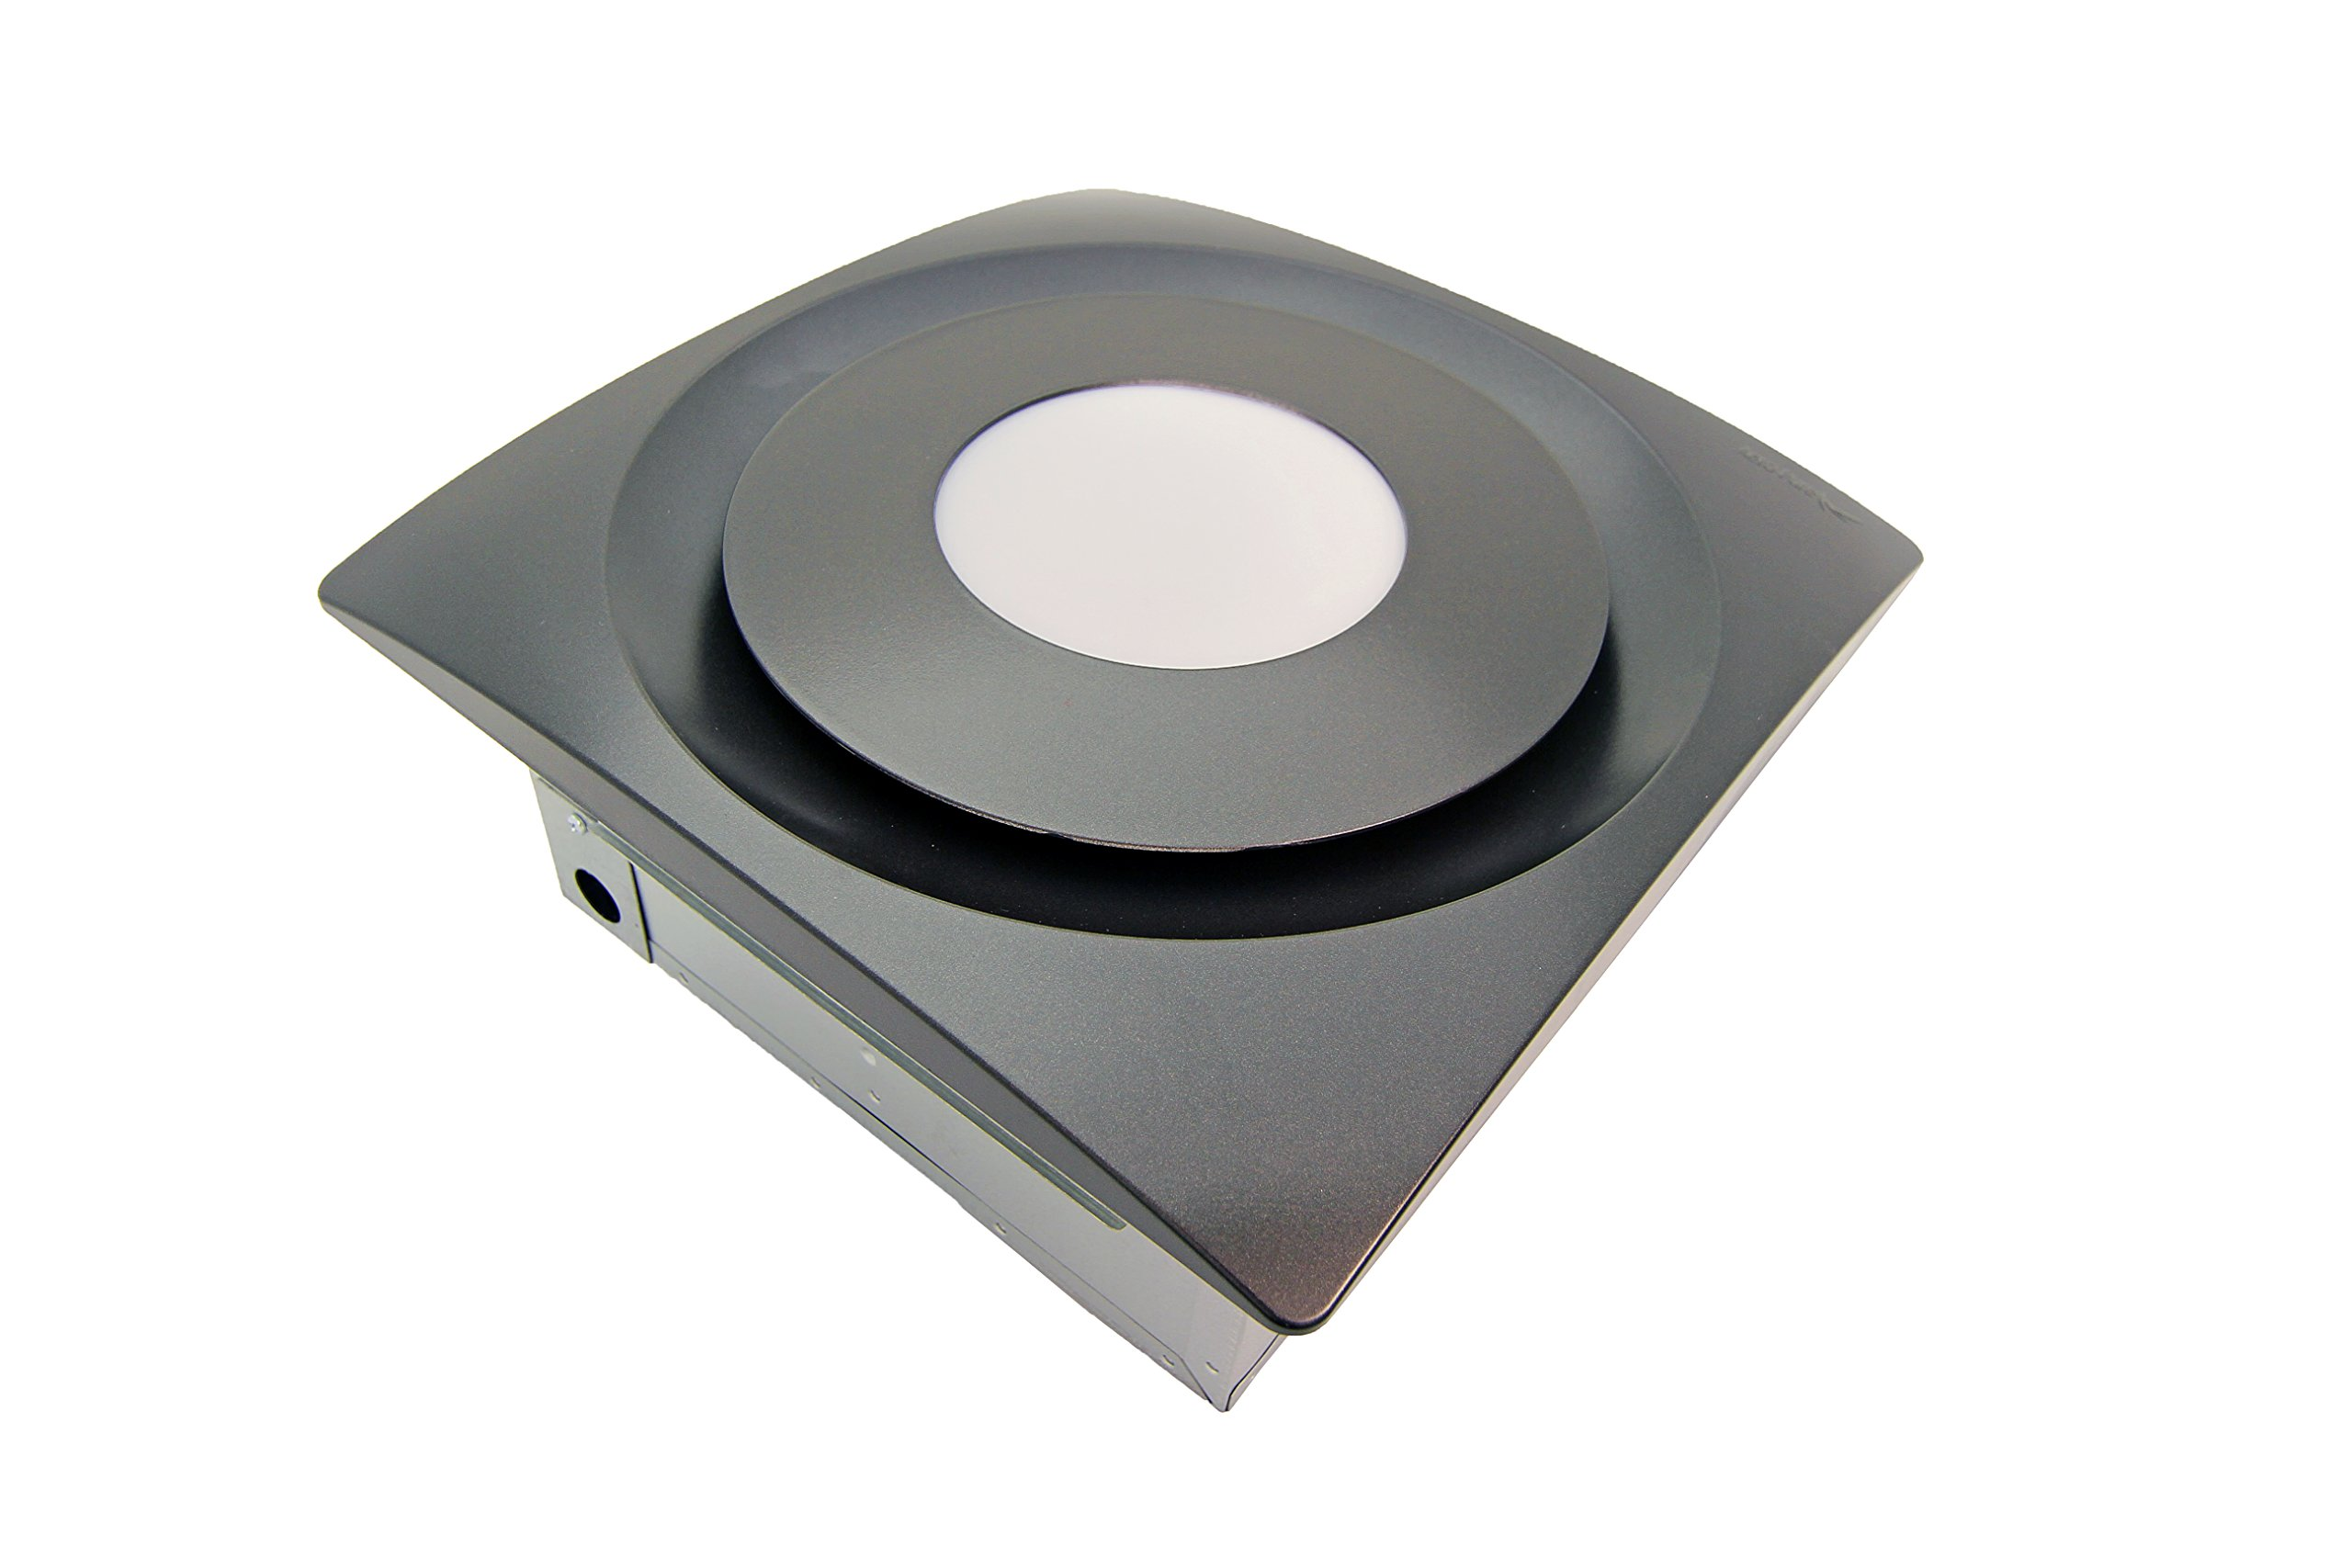 "Aero Pure 10W 3000K AP90-SL OR Slim Fit Bathroom Fan with LED Light, Oil Rubbed Bronze Finish - Slim Fit Housing Fits Into 2"" X 6"" Ceiling Joists Or Greater 10W, 3000K Led Light Pad Provides Warm Natural Light ETL/CETL Listed For Use In Shower/Tub Shower Enclosure When Used With A Gfci Circuit Breaker - bathroom-lights, bathroom-fixtures-hardware, bathroom - 81pT2K4laPL -"